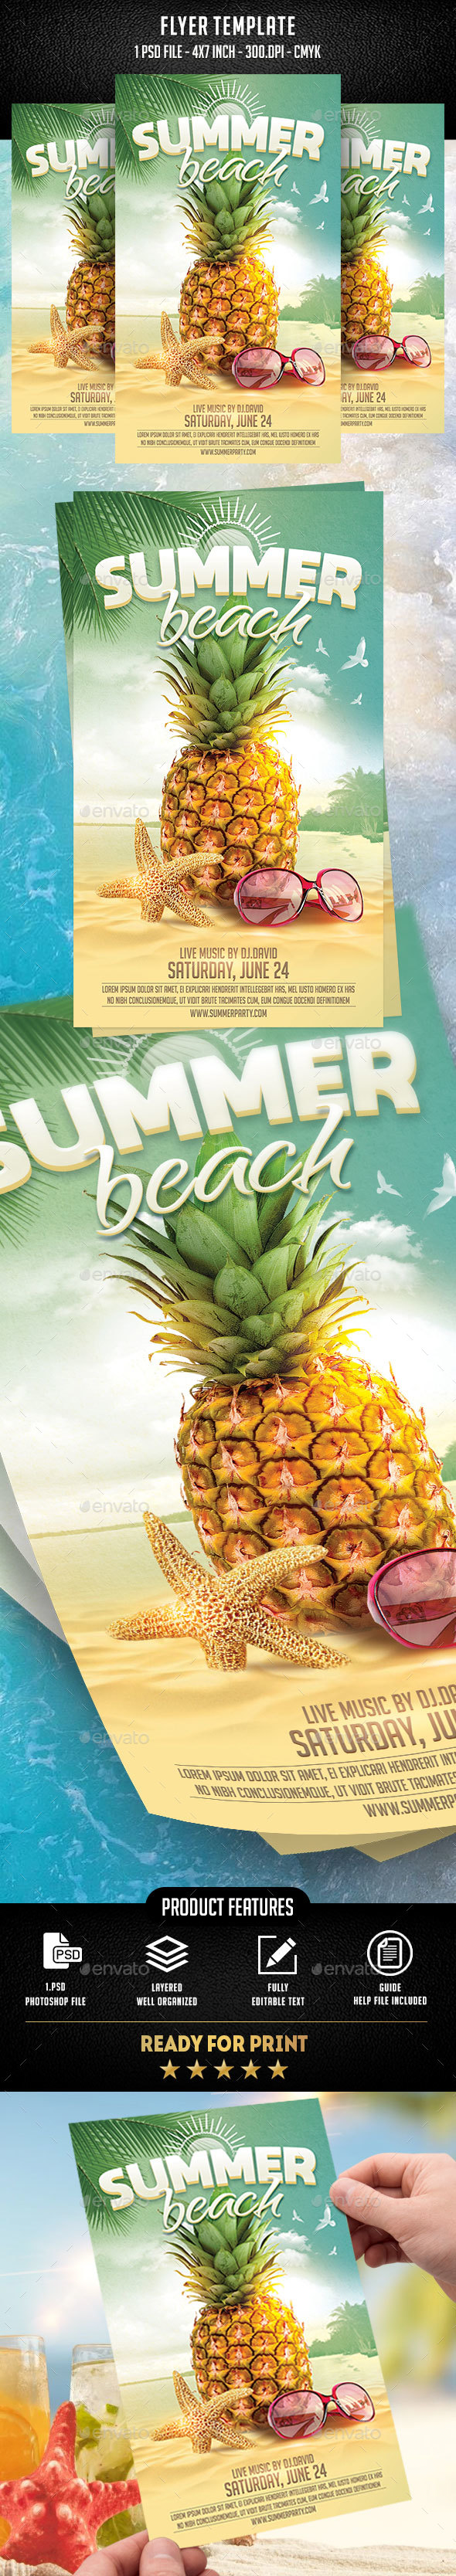 Summer Beach Flyer Template - Flyers Print Templates